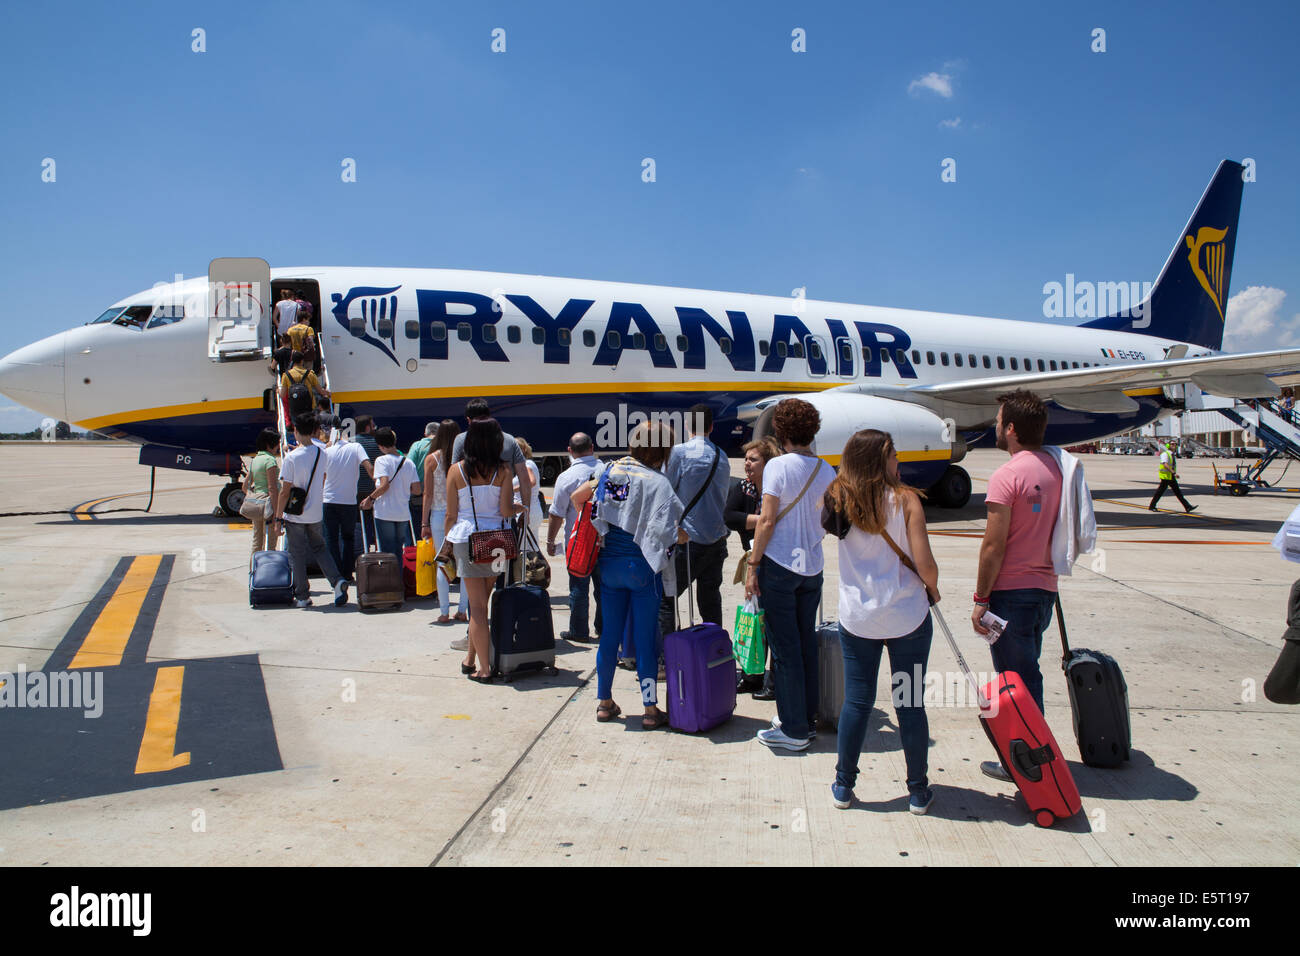 Passengers board a Ryanair flight at Seville airport - Stock Image